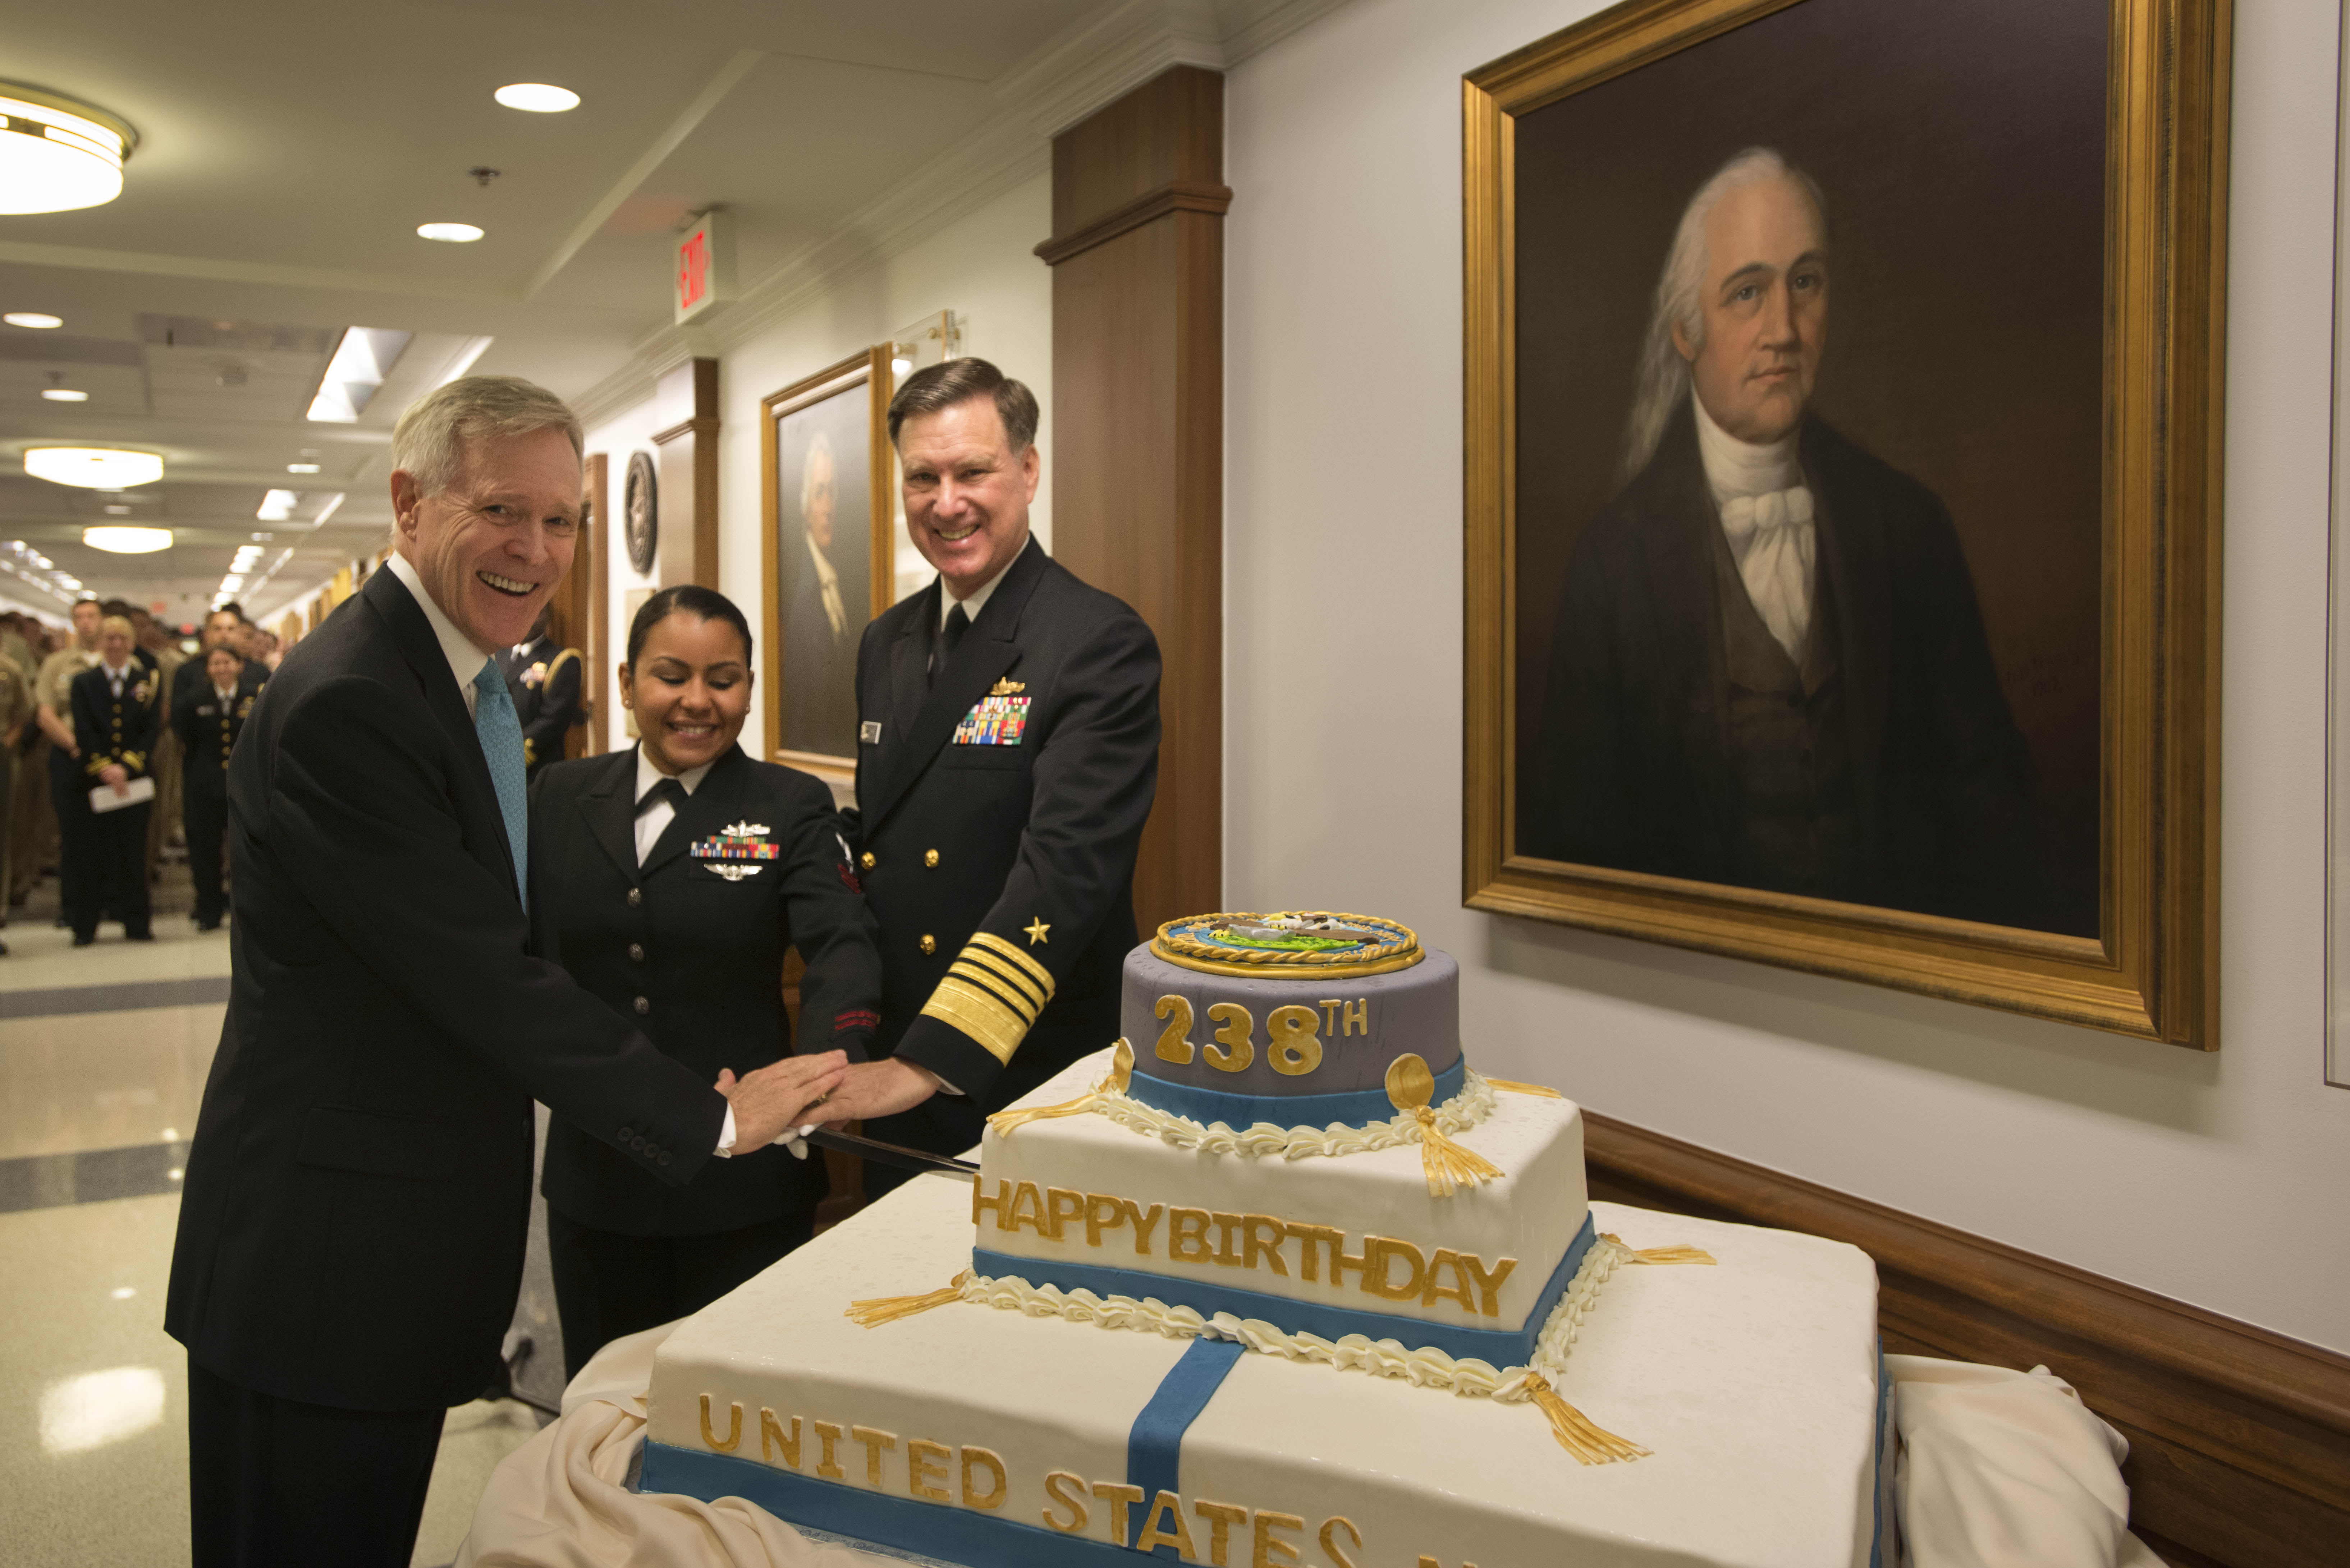 Secretary of the Navy (SECNAV) Ray Mabus, left, Yeoman 2nd Class Kritzia Pontier and Vice Chief of Naval Operations (VCNO) Adm. Mark Ferguson, cut a cake to celebrate the 238th birthday of the Navy. US Navy Photo